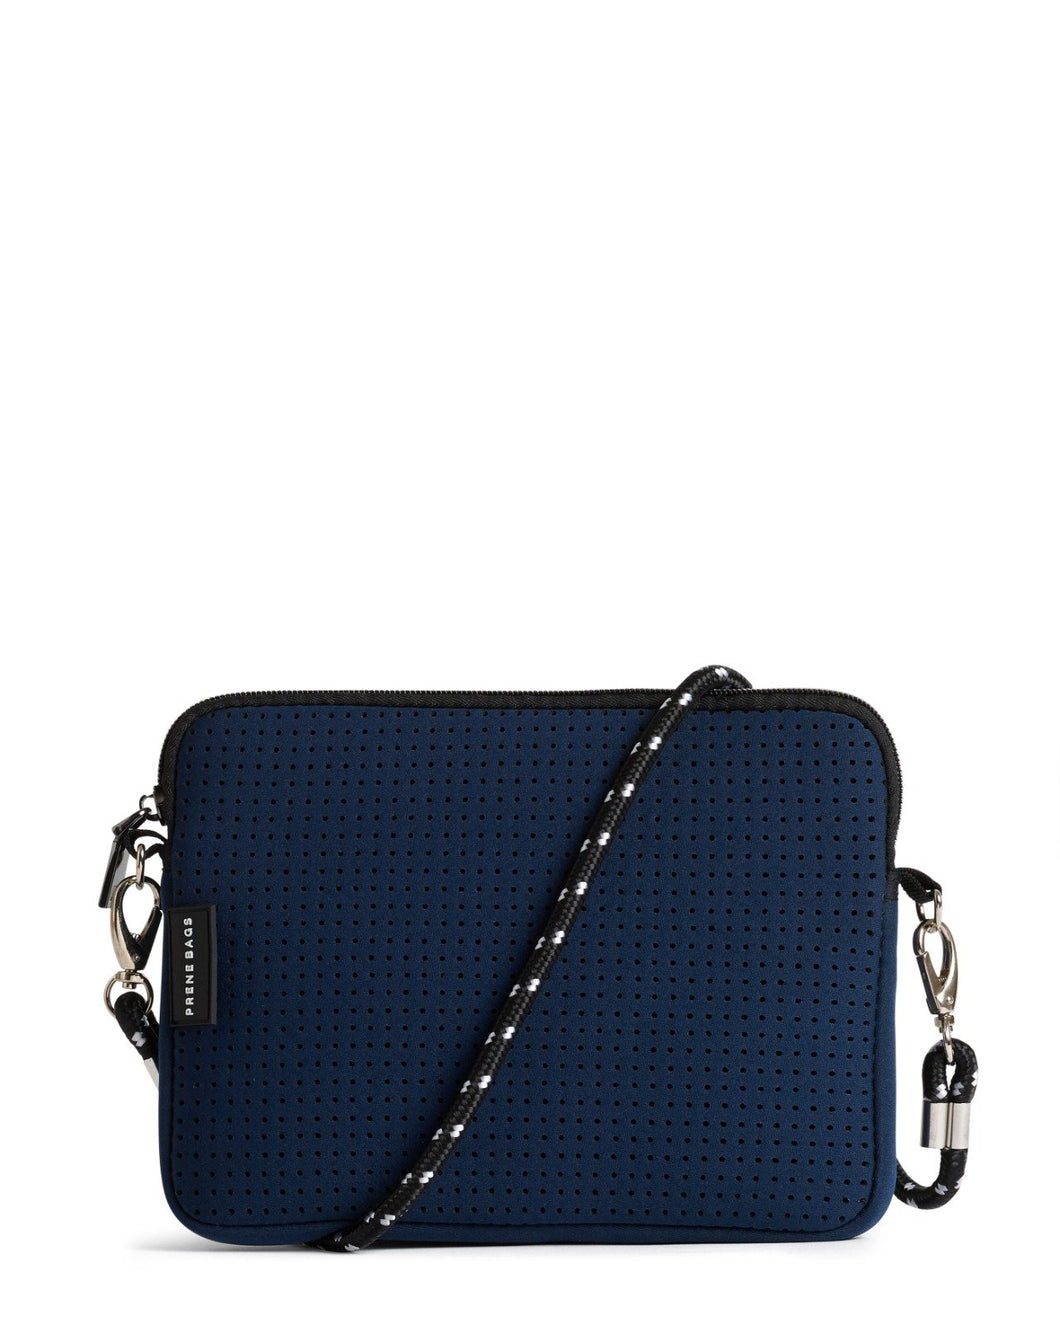 The Pixie Bag - Navy by Prene